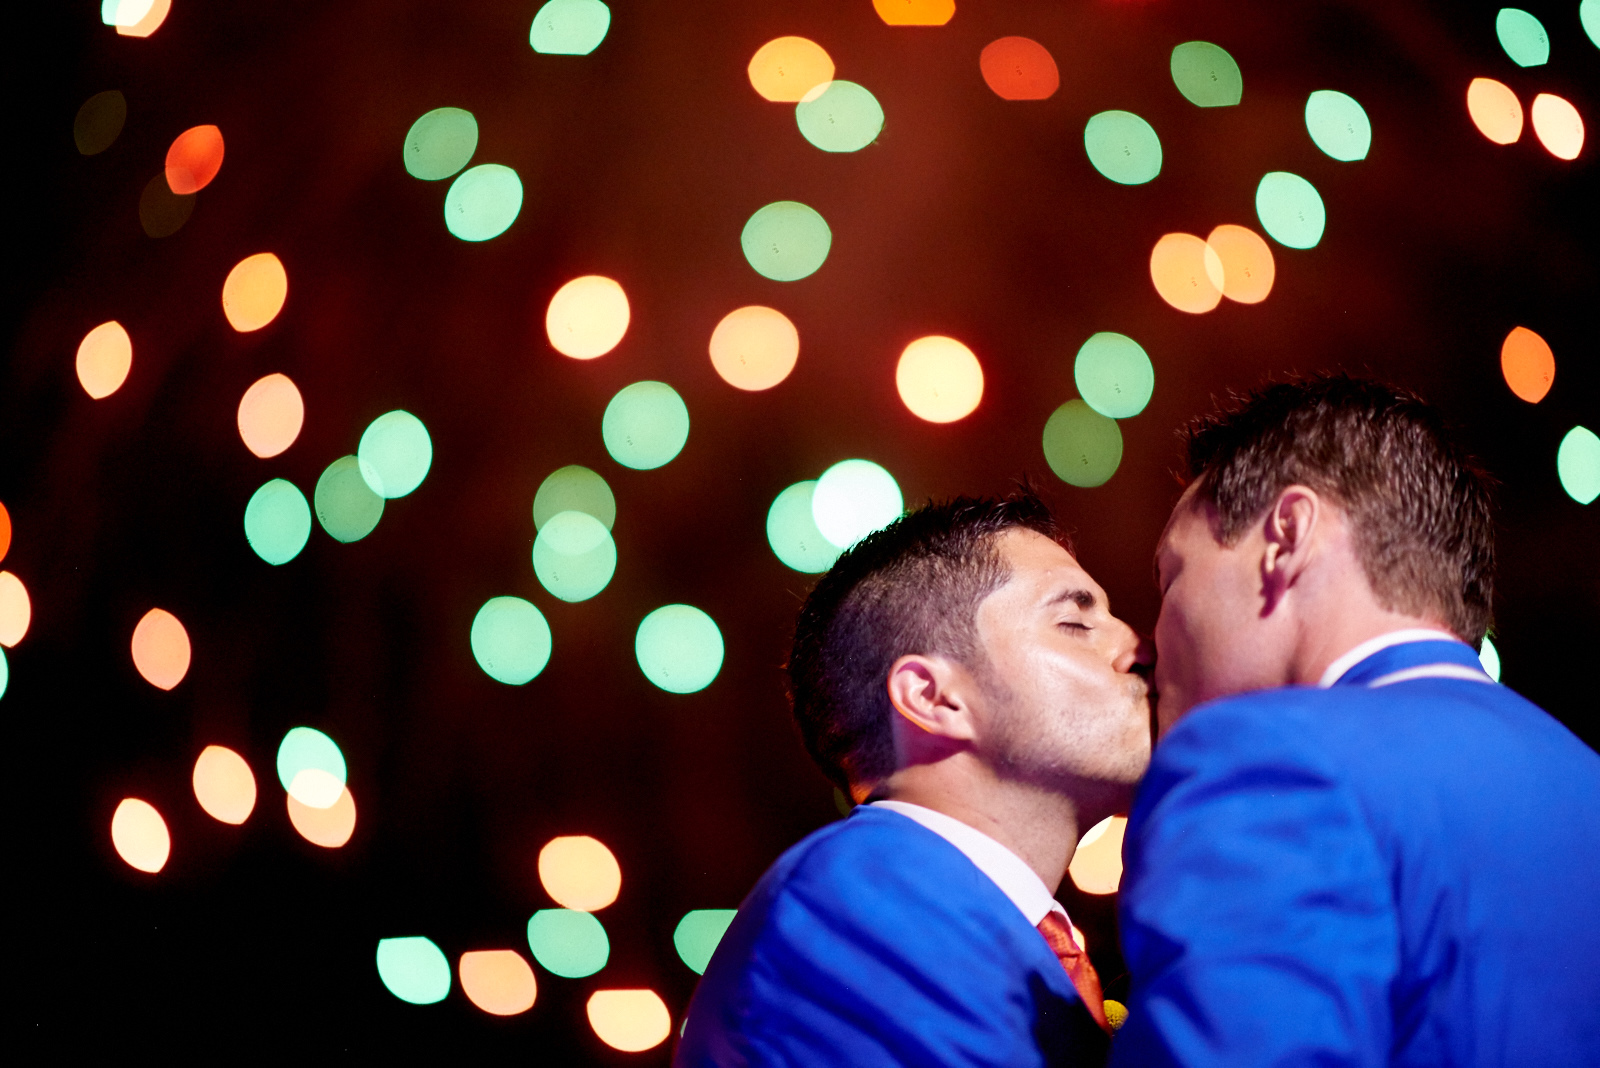 Wedding photographer in Puerto Vallarta, Sayulita, Punta Mita, Nayarit, Mexico - LGBT same sex mariage - gay couple kissing